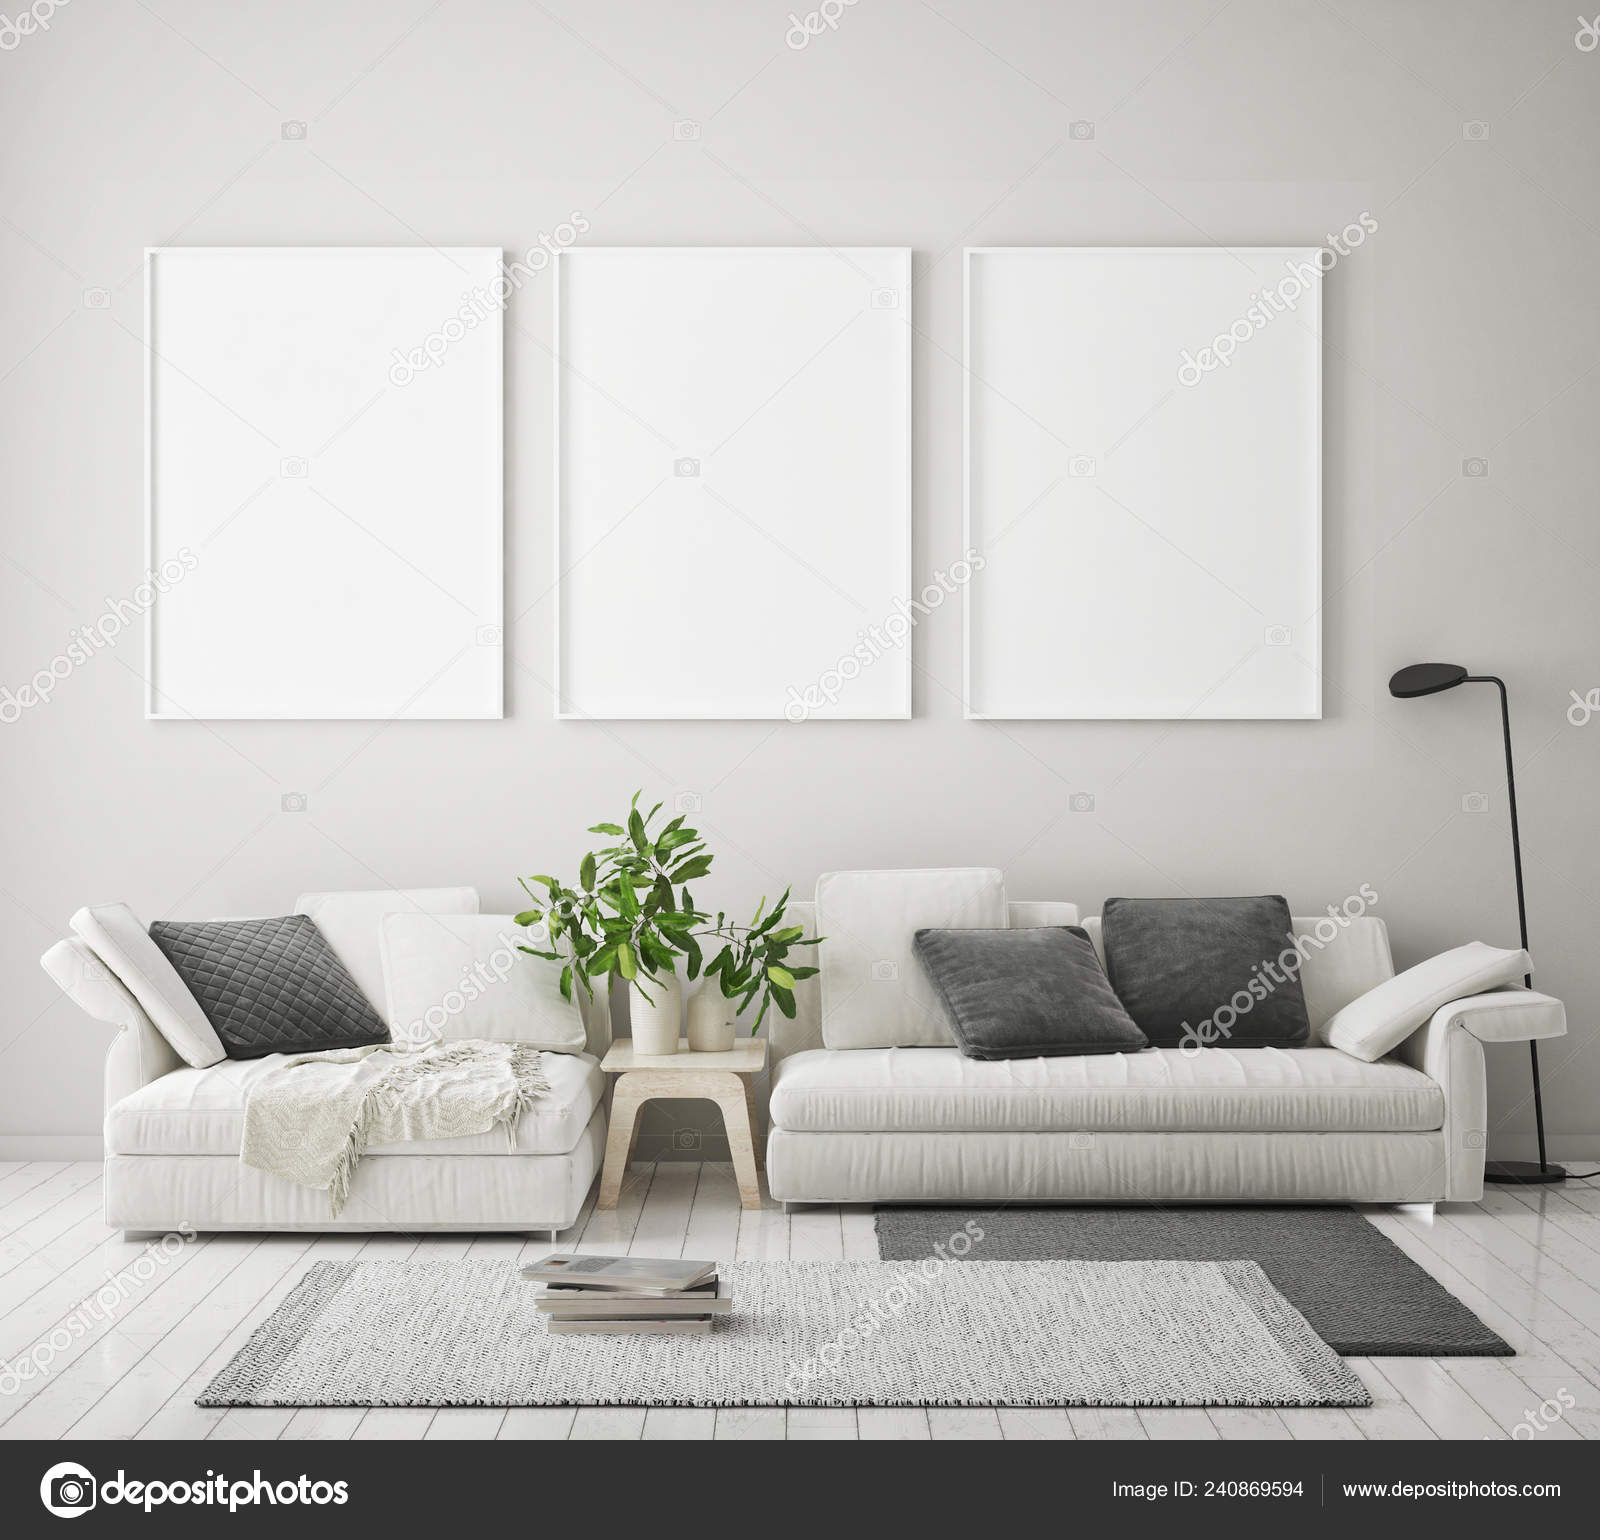 Background Living Room Mock Poster Frame Modern Interior Background Living Room Scandinavian Style Stock Photo C Mockupdesign 240869594